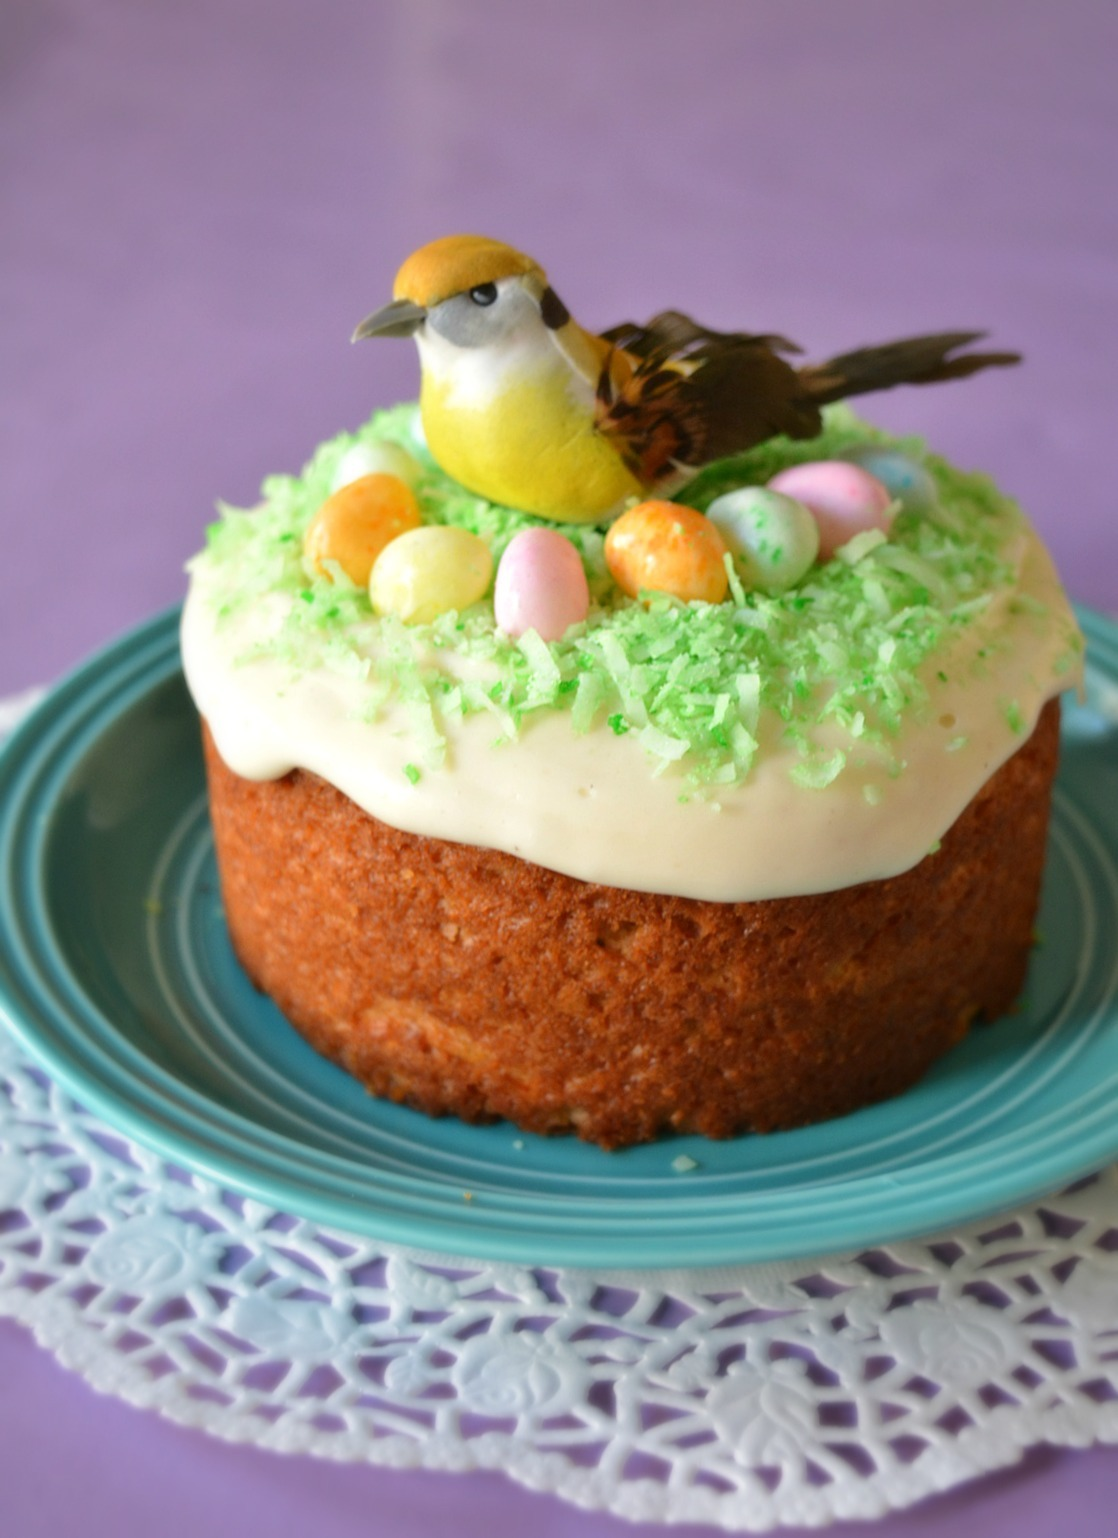 Easter Bird's Nest Cake | Eggless Carrot cake with cream cheese frosting